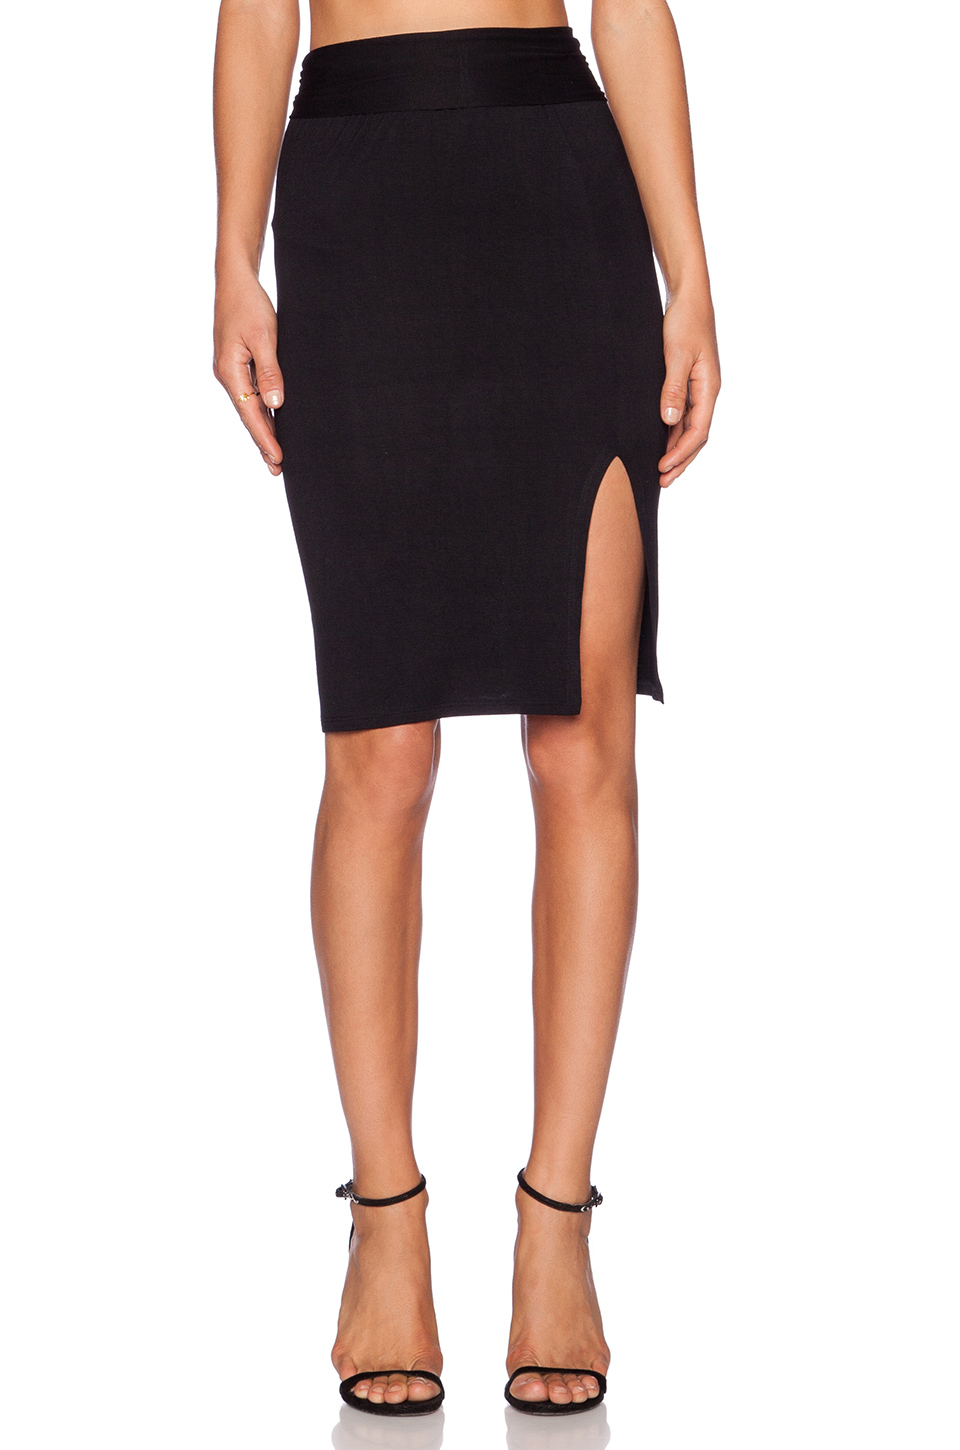 Shop for and buy black pencil skirt online at Macy's. Find black pencil skirt at Macy's.